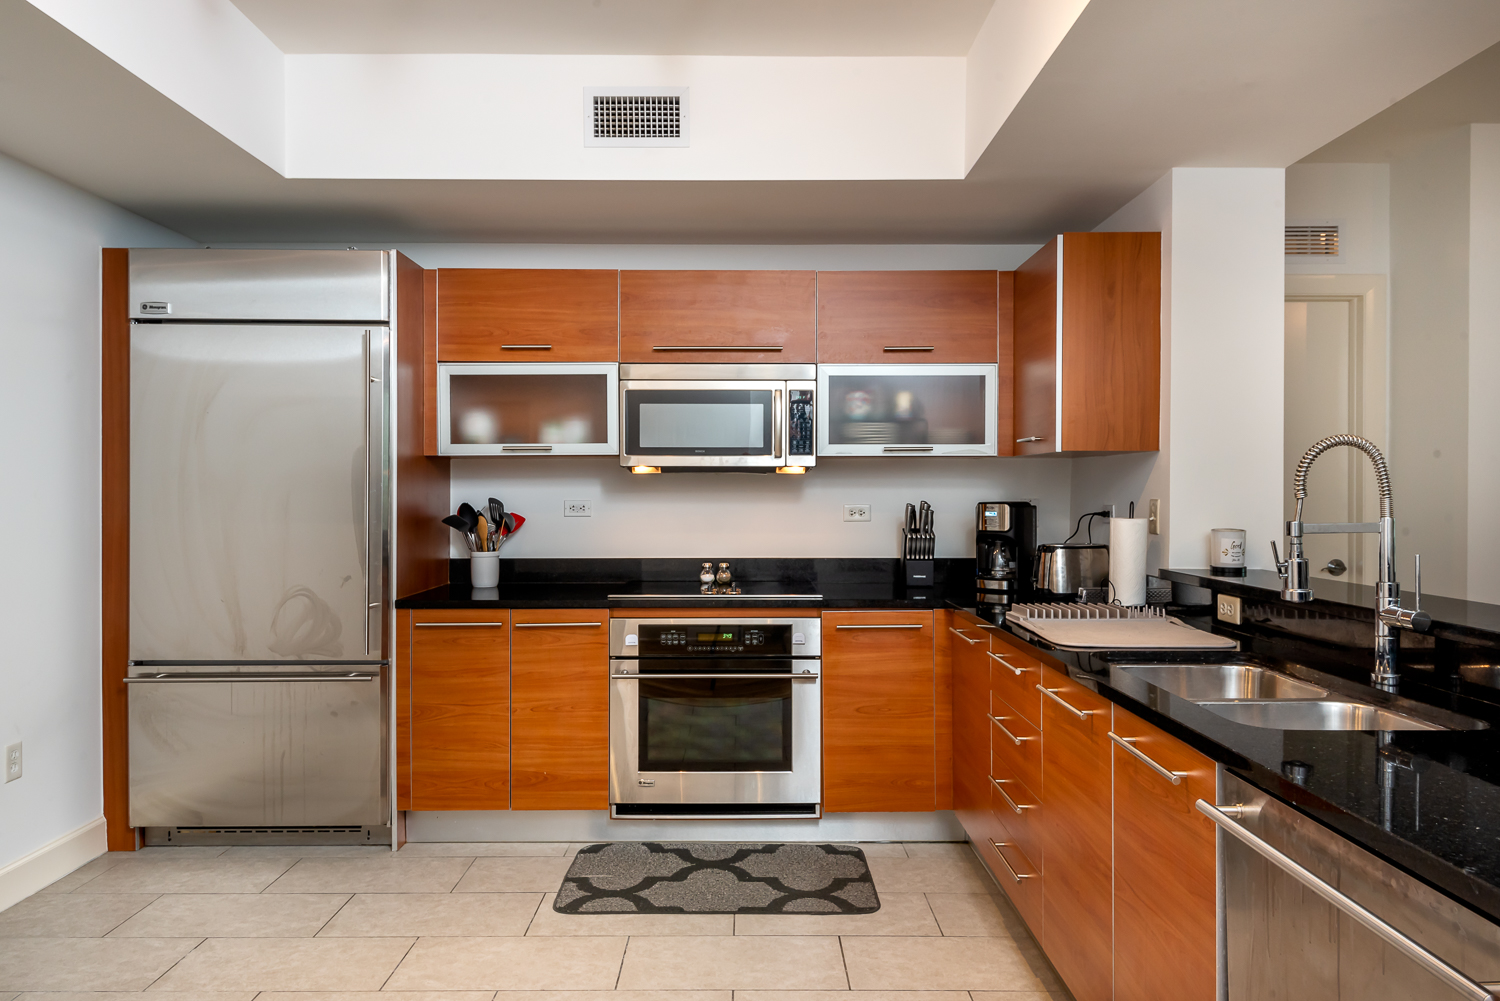 Fort-myers-fl-river-condo-oasis-kitchen-one-point-perspective